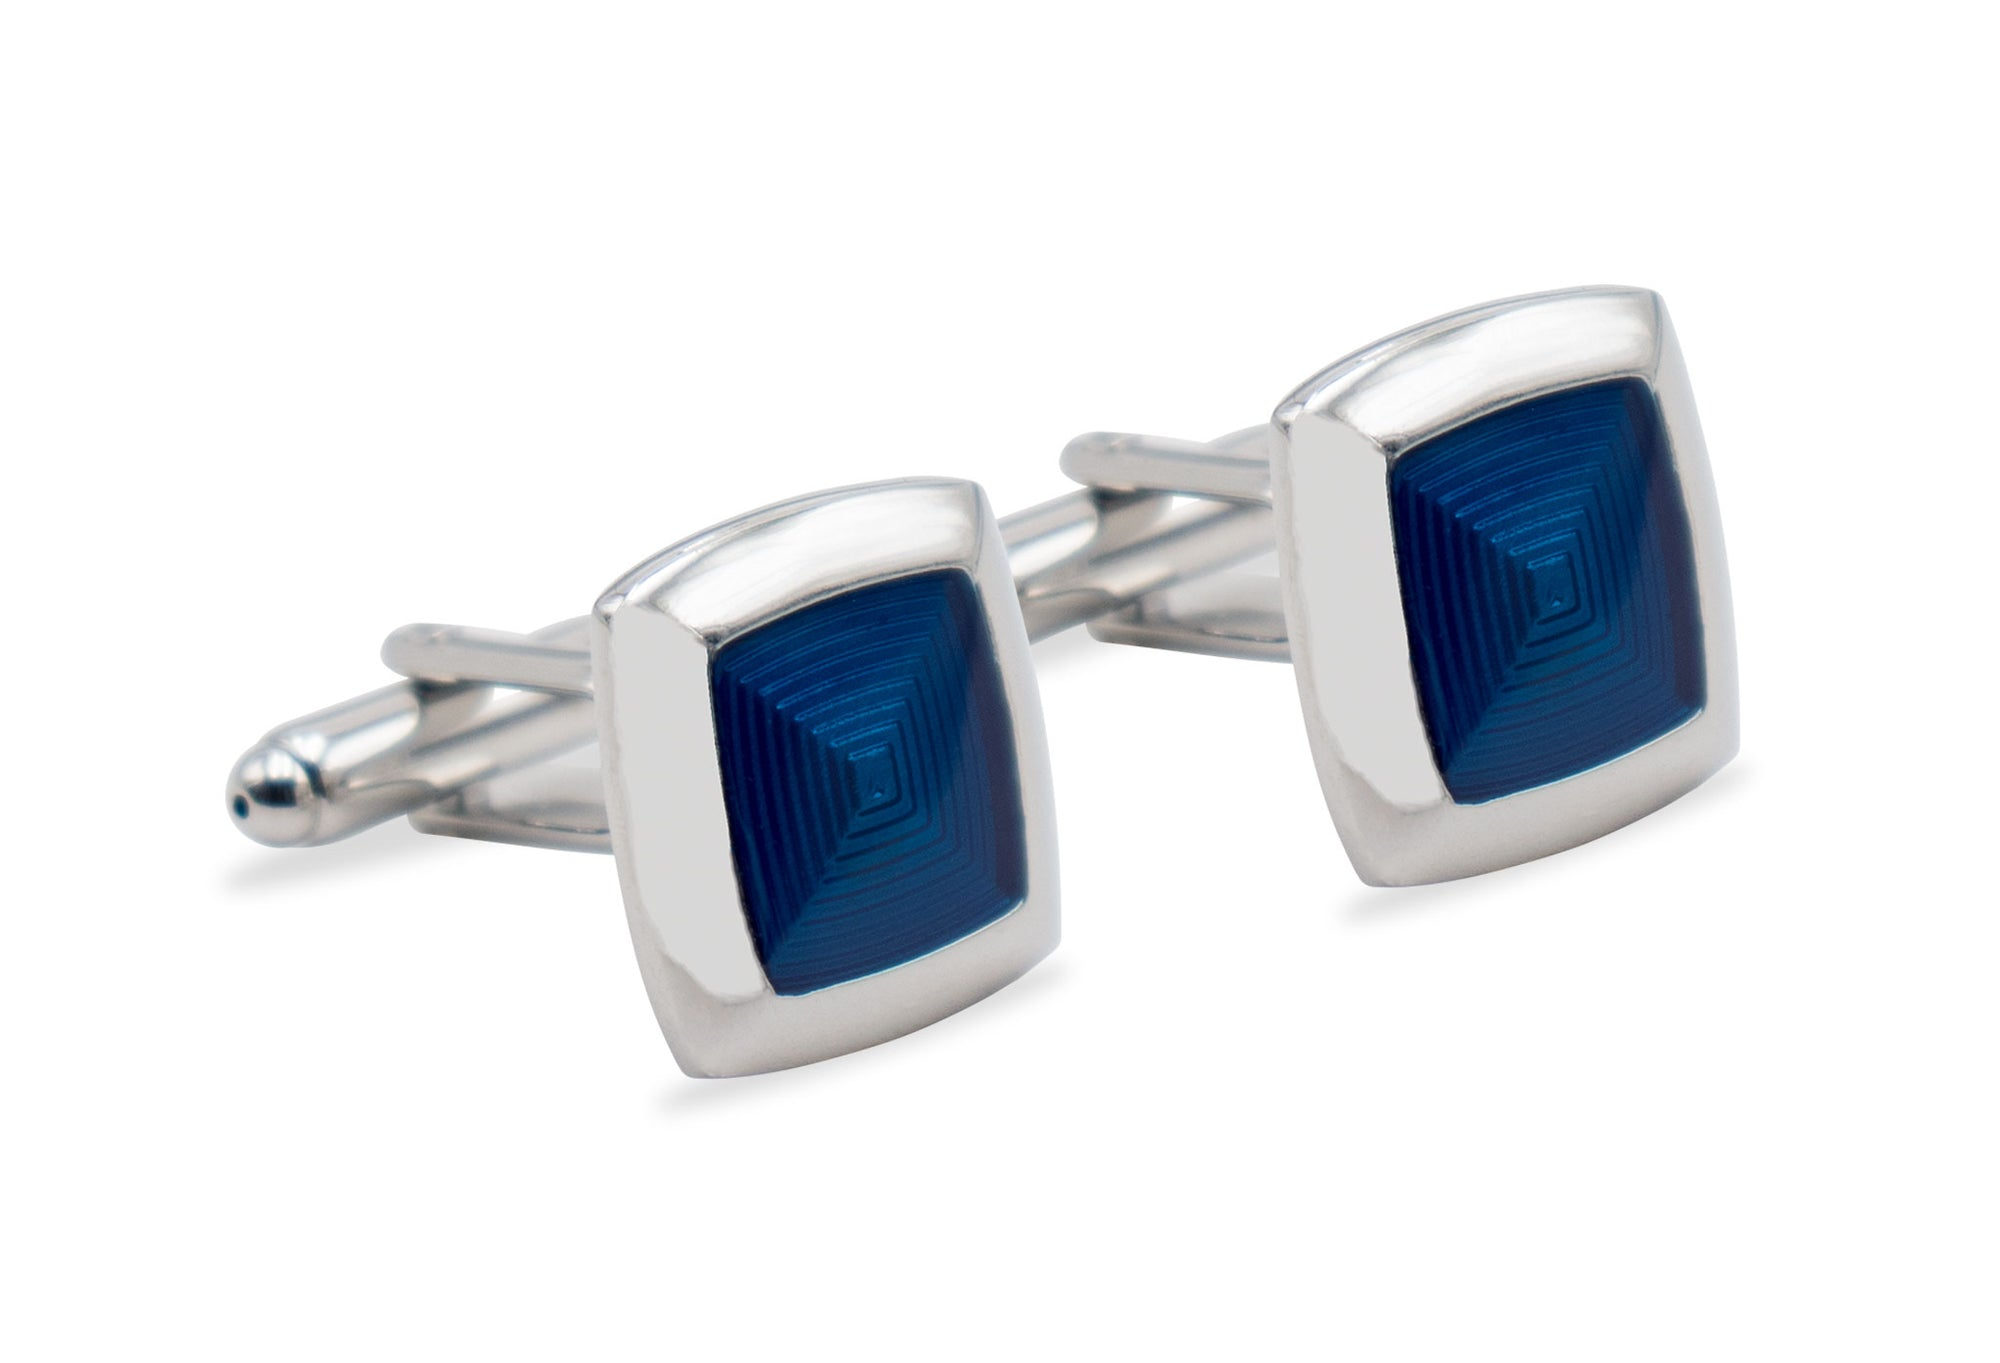 Quibor Blue Chrome Cufflink